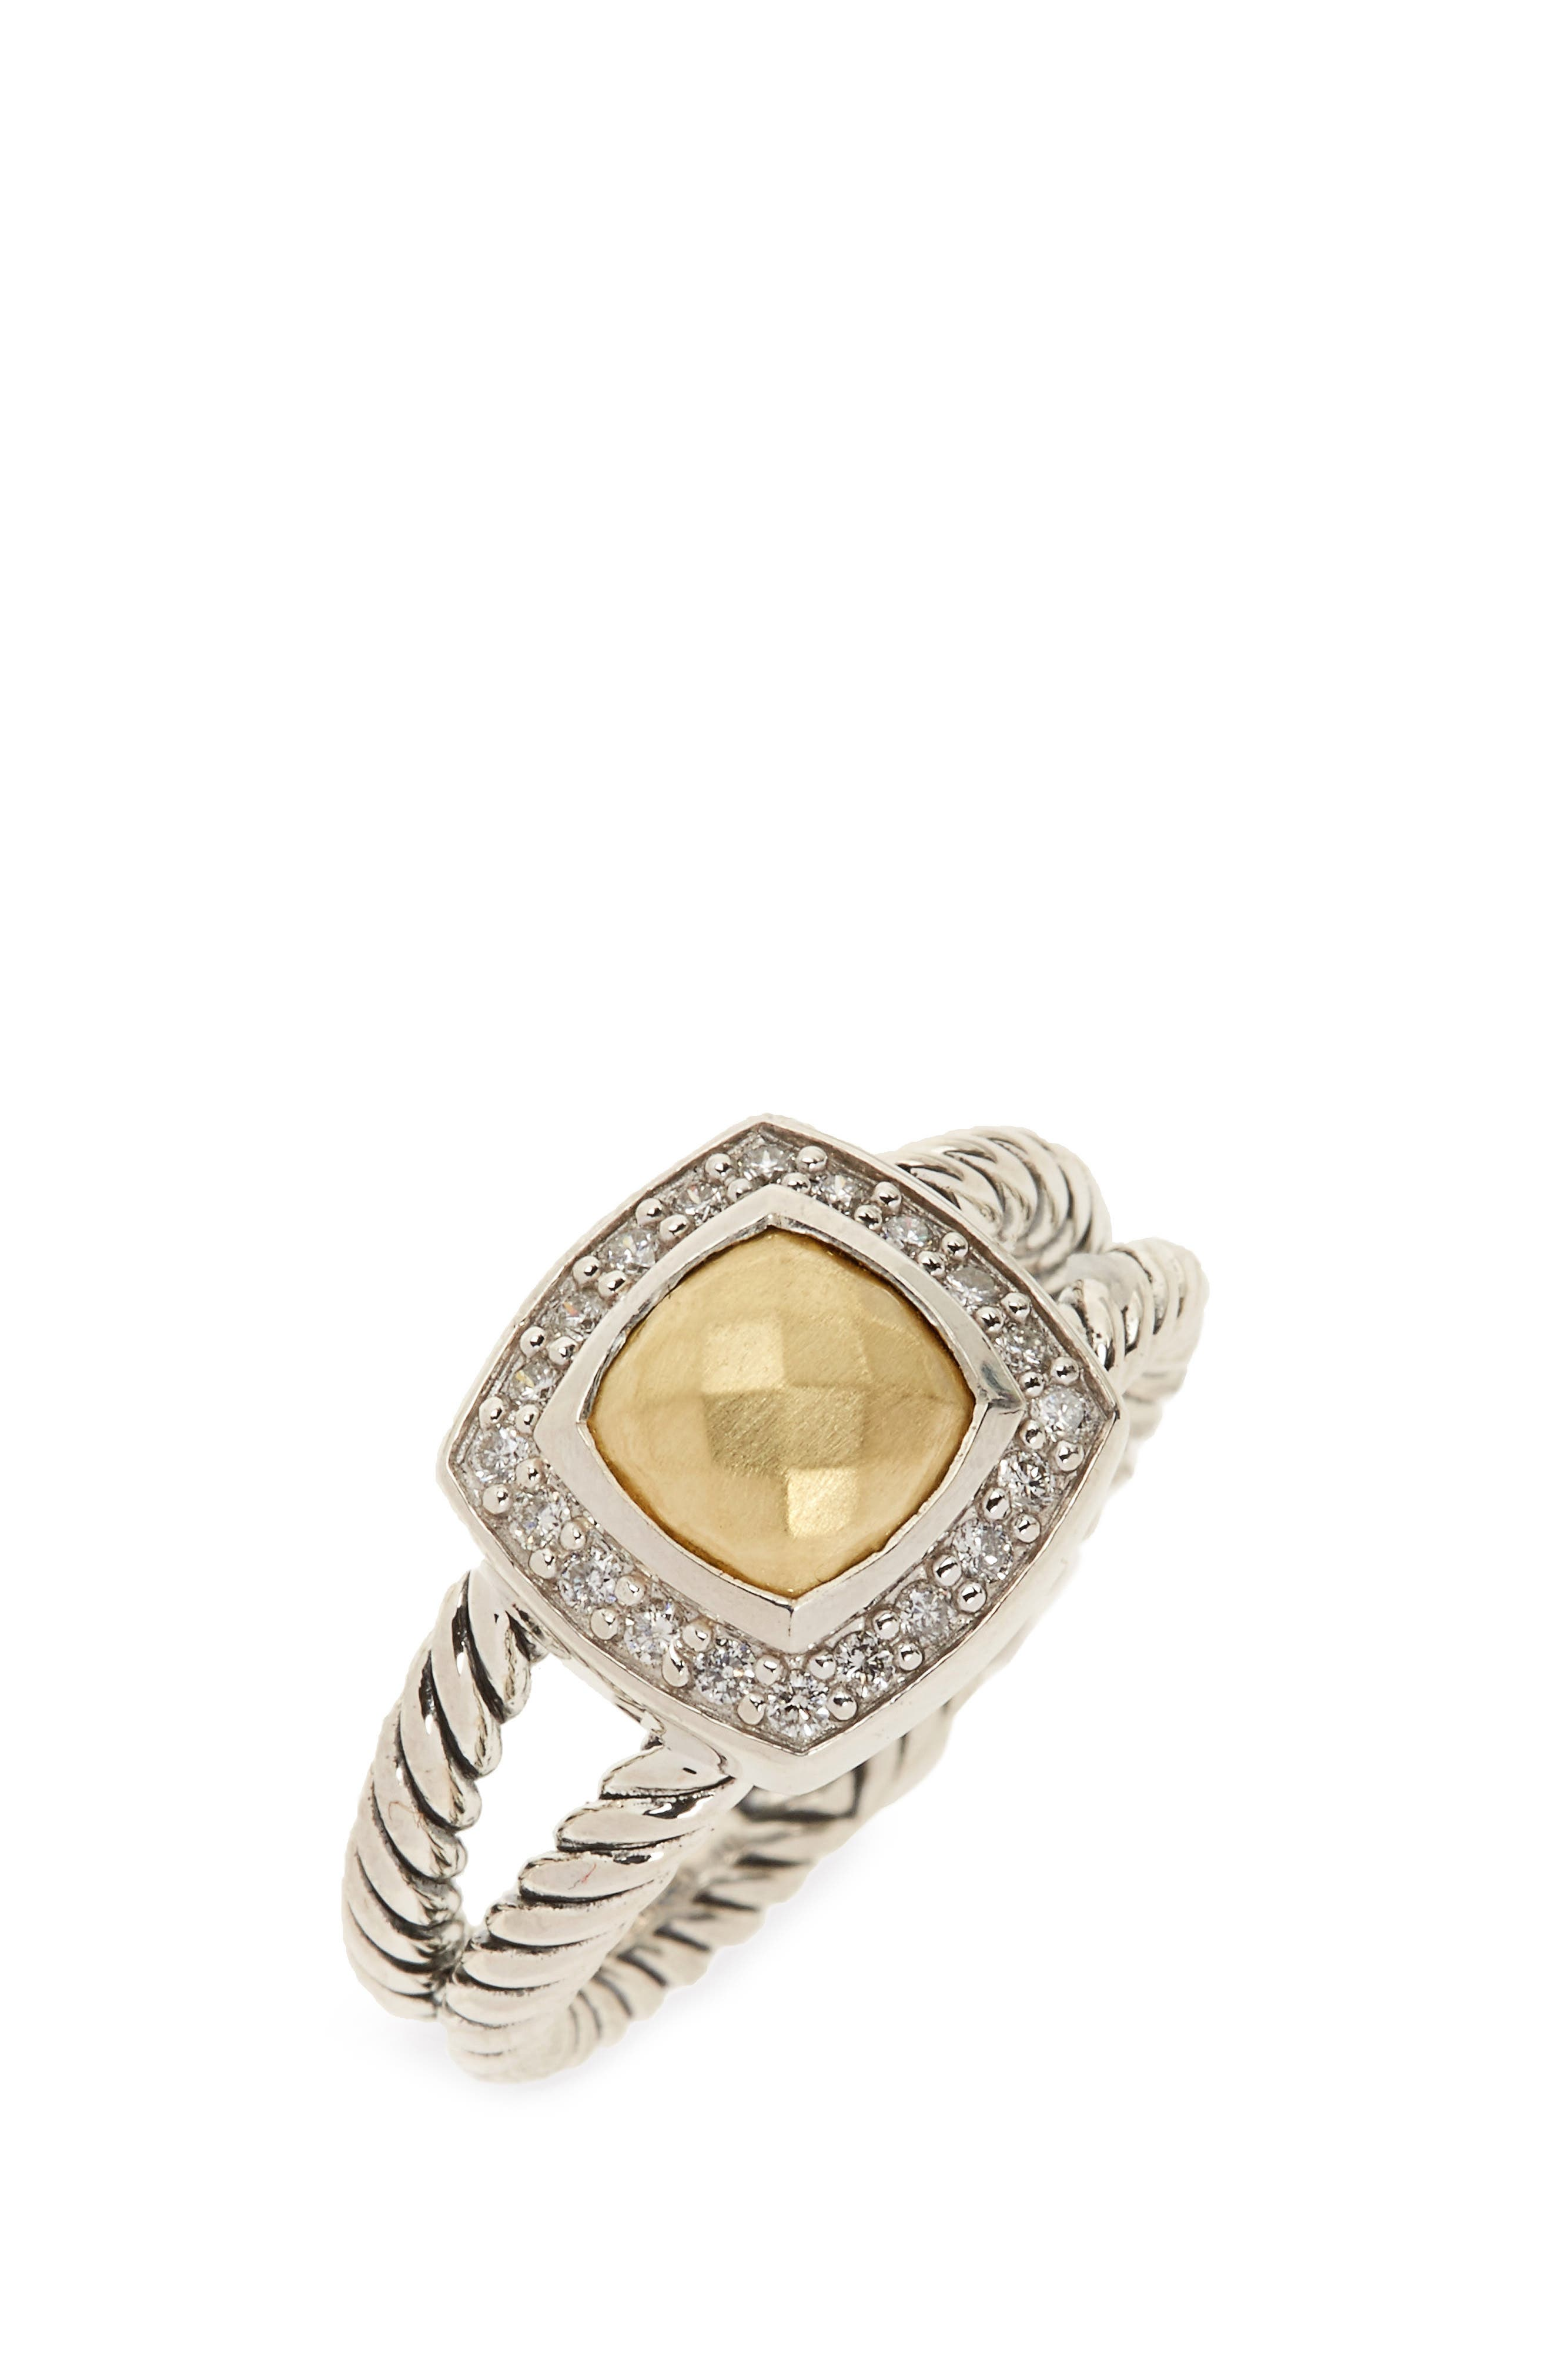 DAVID YURMAN Petite Albion Ring with Semiprecious Stone & Diamonds, Main, color, SILVER/ GOLD